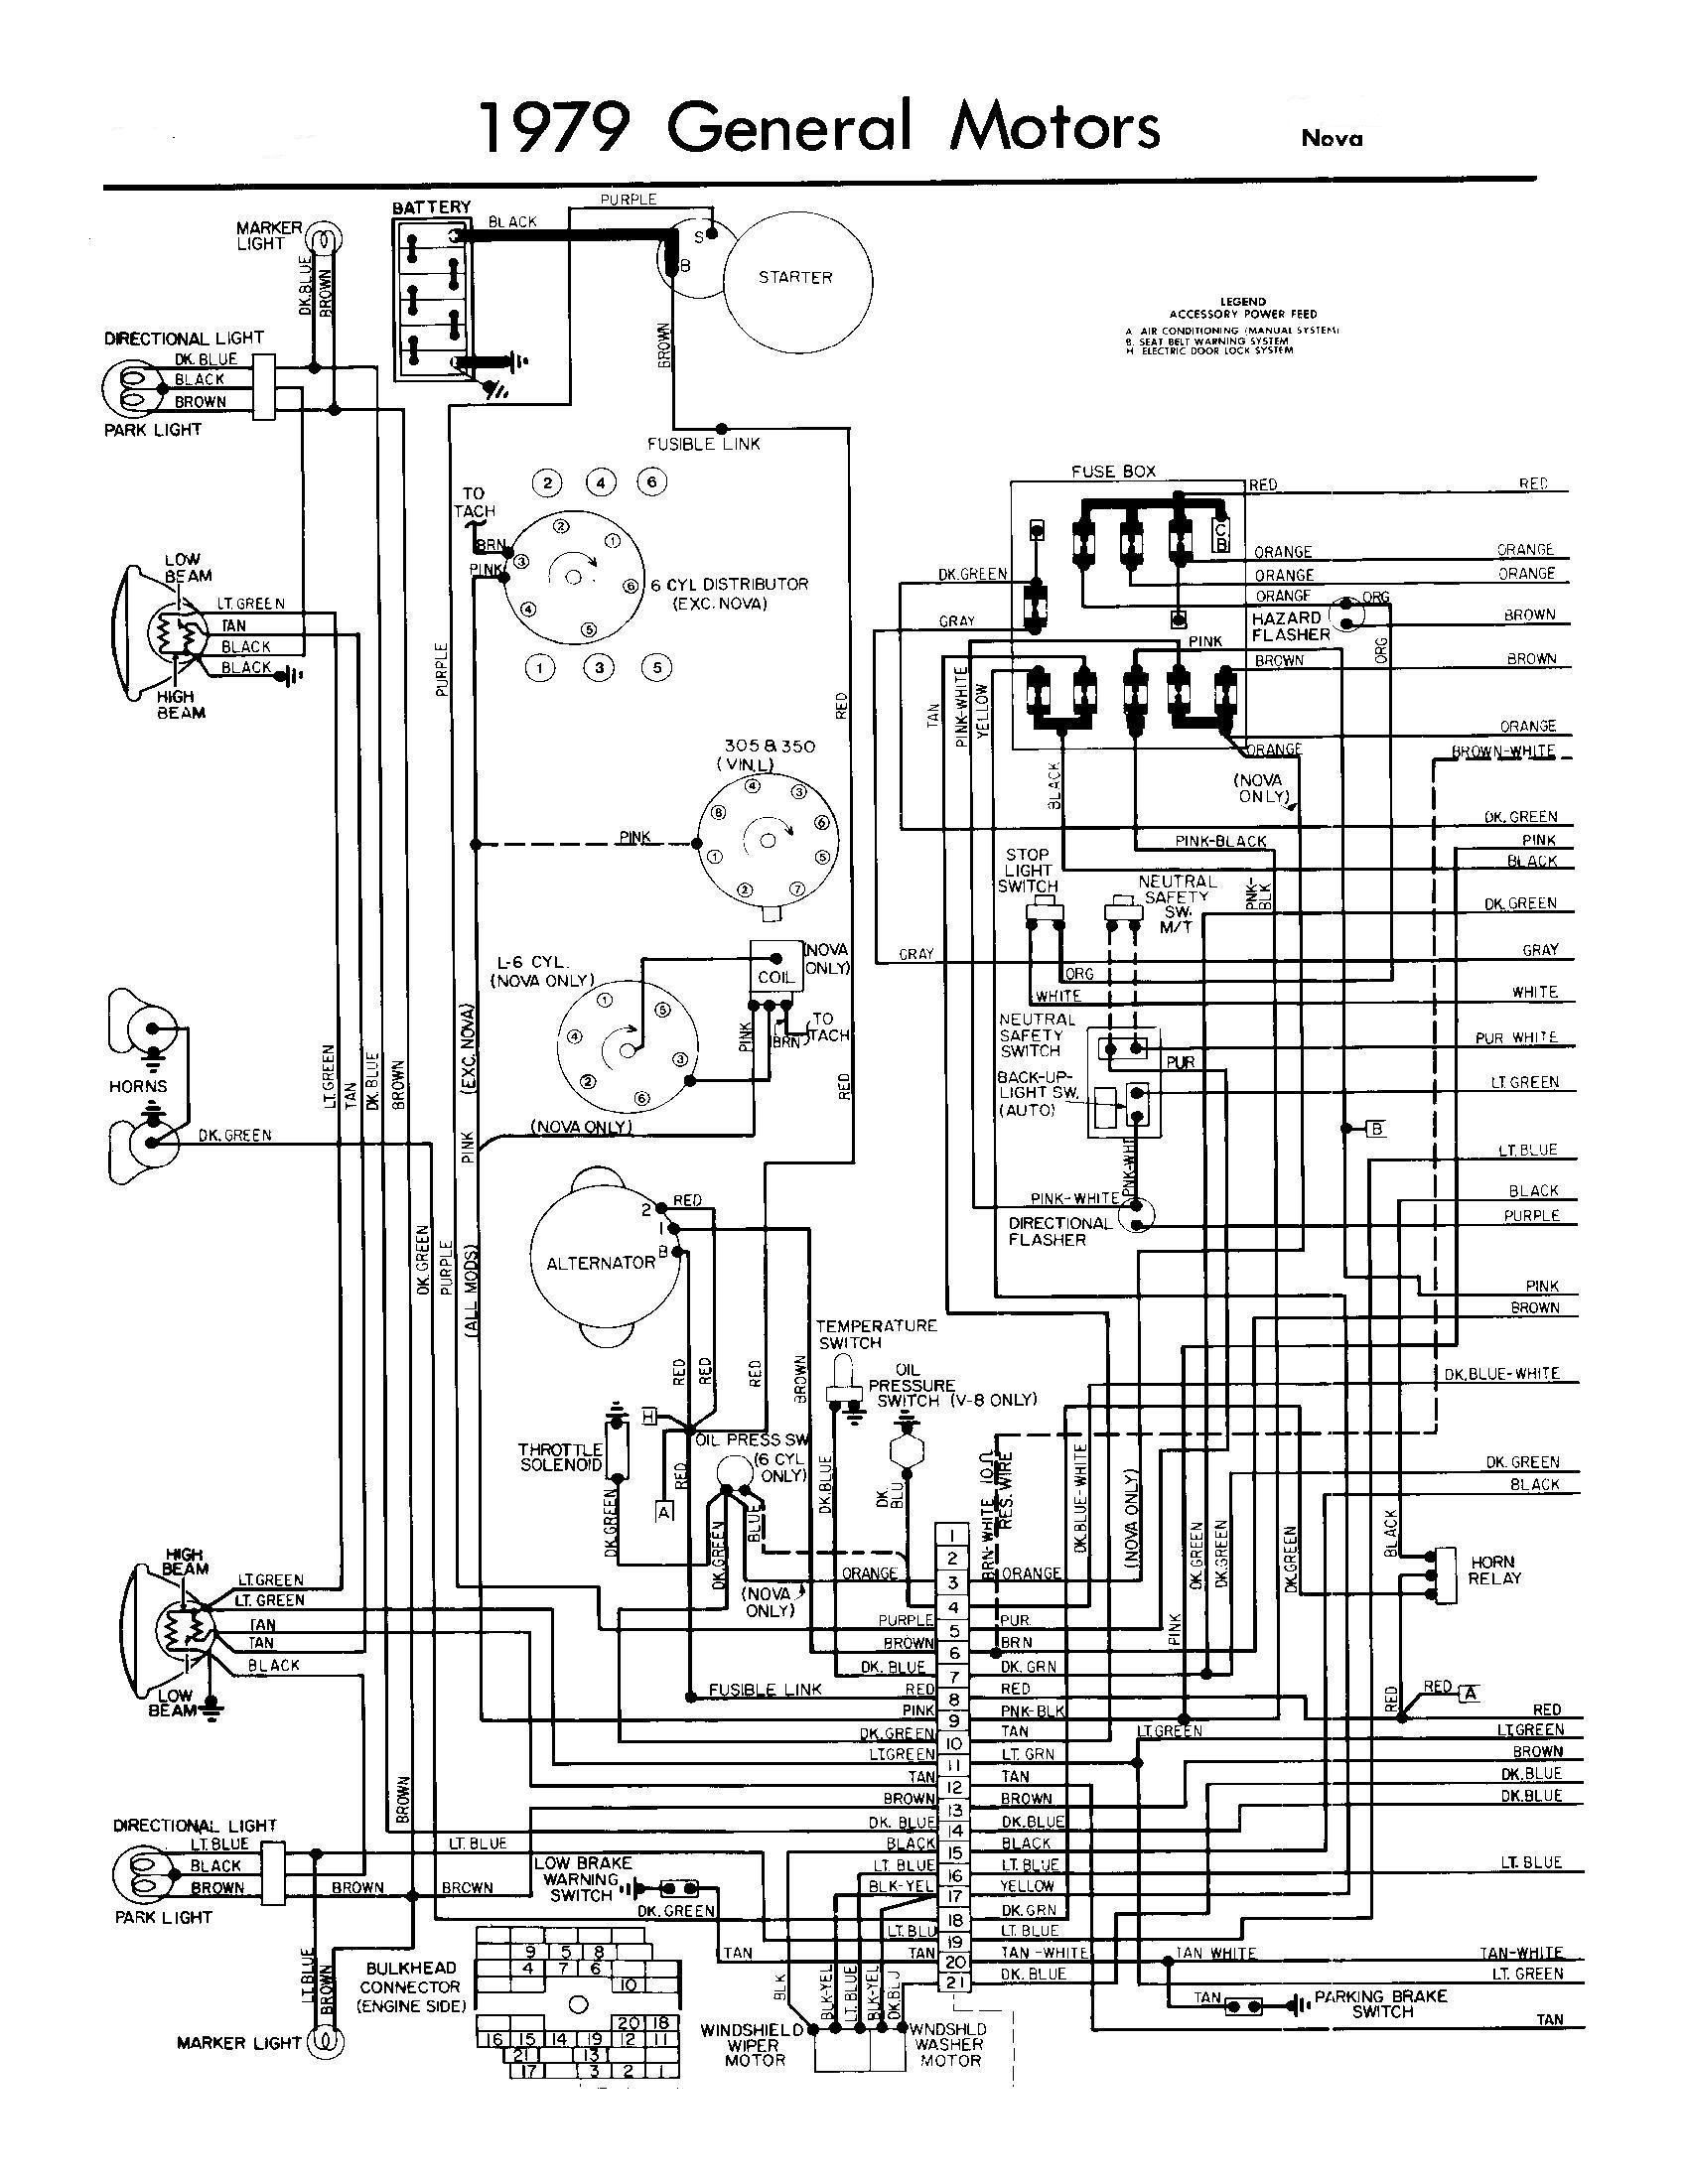 99 Jeep Wrangler Fuse Box Diagram as well Town car lighting control module as well 1987 Jeep 4wd Vacuum Motor besides Cadillac Relay Location furthermore Index6. on 99 jeep cherokee turn signal relay